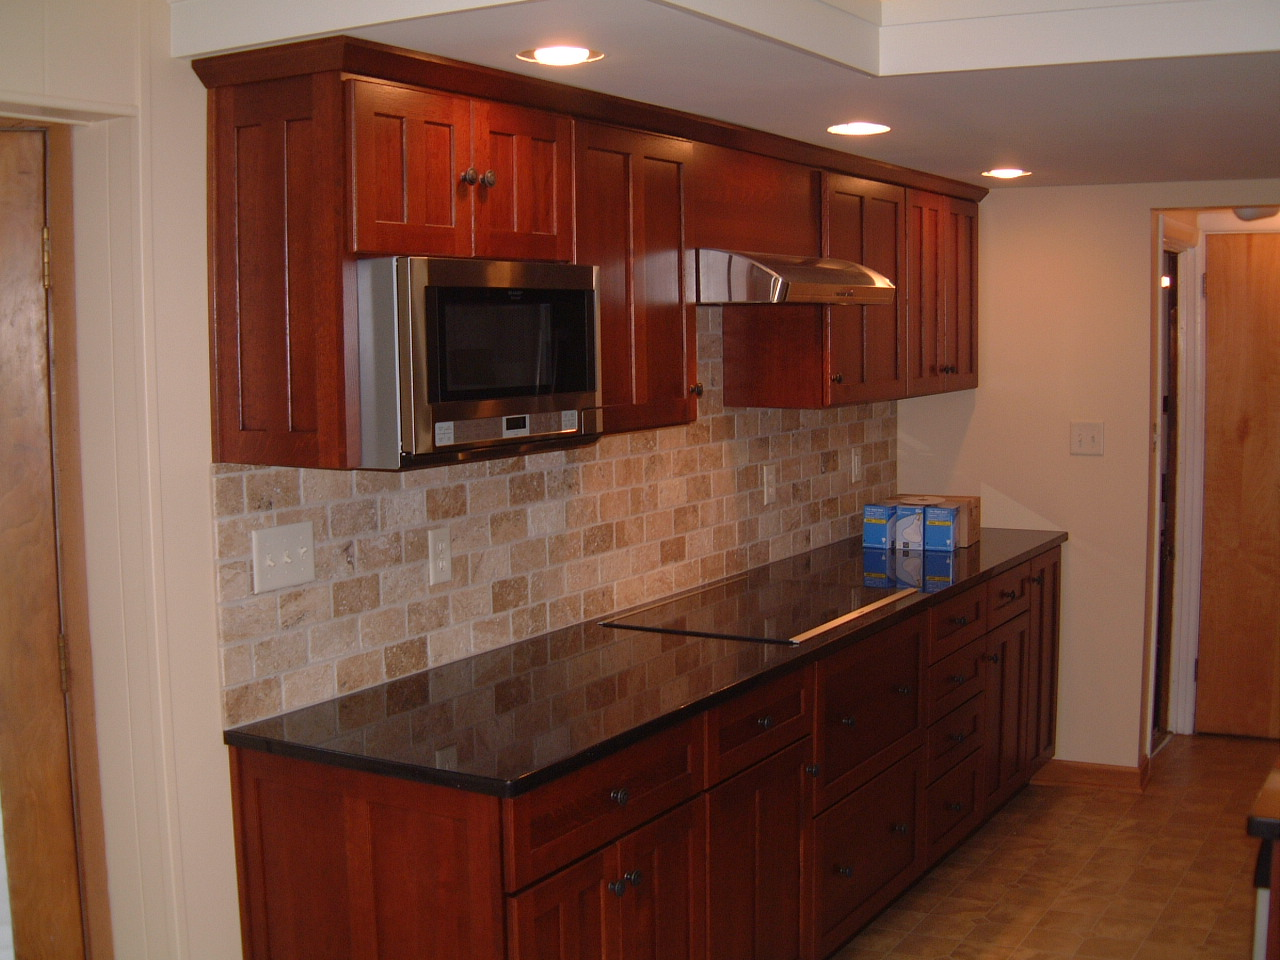 Springfield kitchen project complete remodeling for Competitive kitchen designs